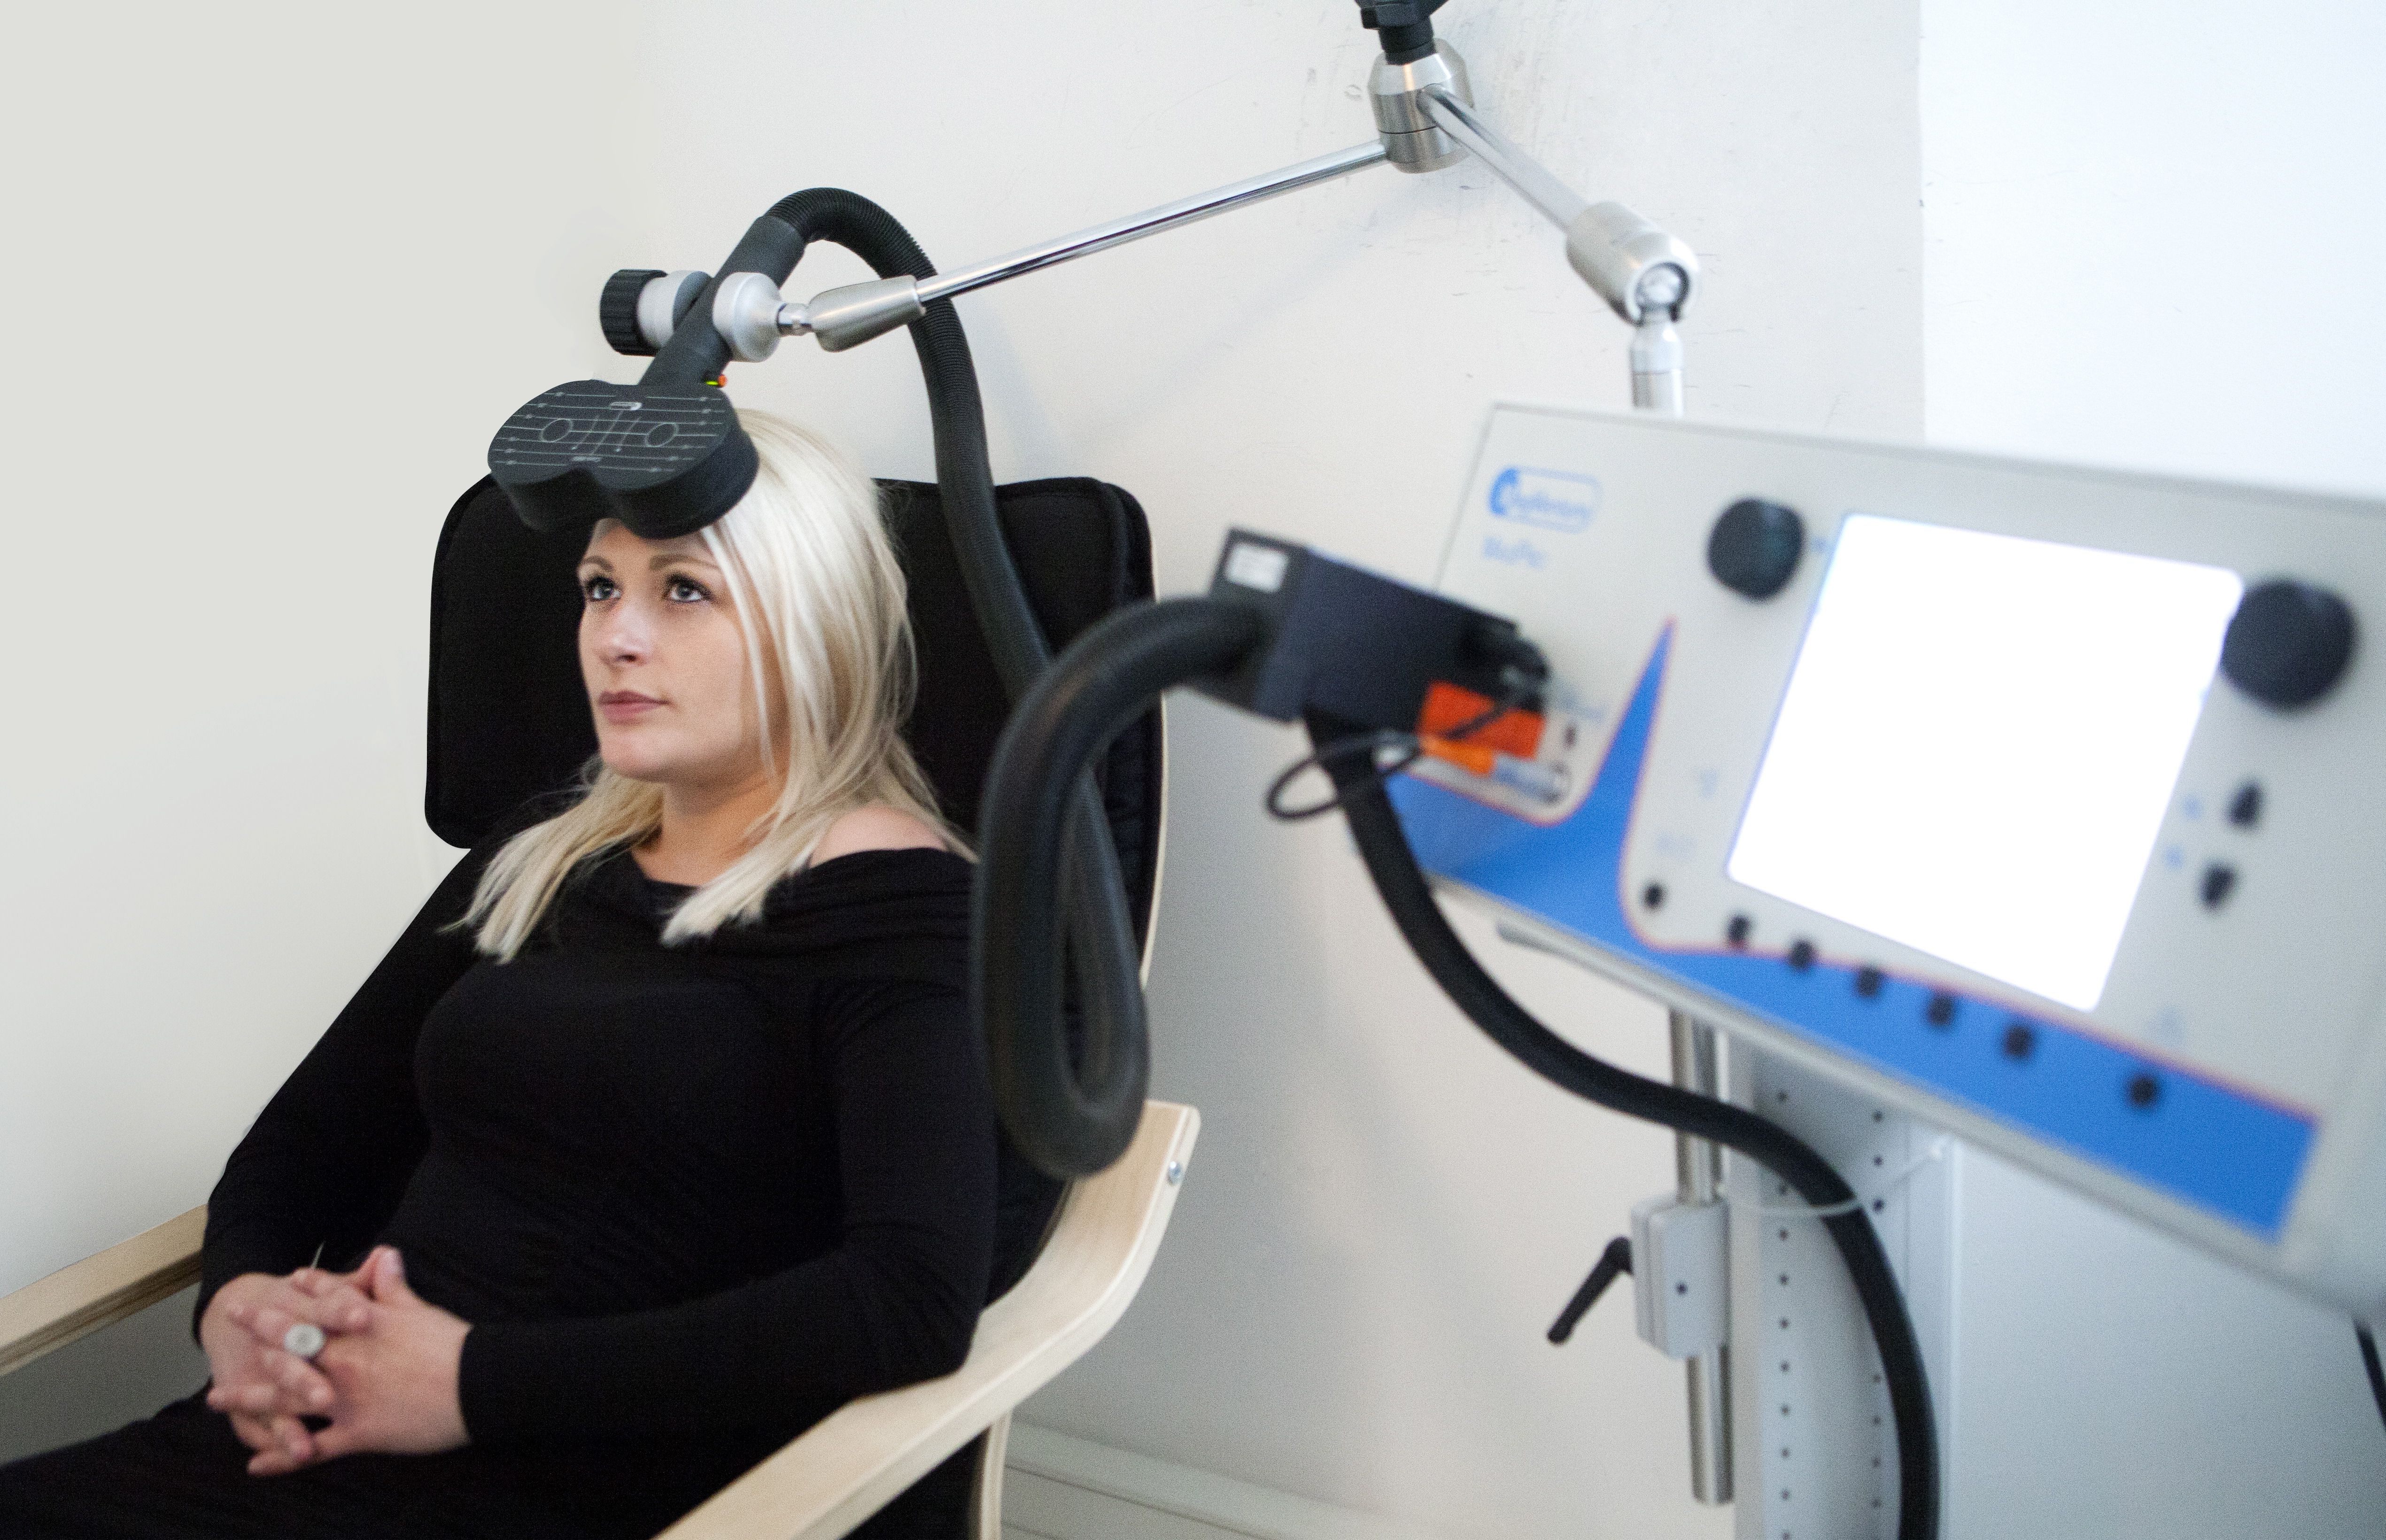 transcranial magnetic stimulation tms for depression The key terms used to search for randomized control trails and guidelines were major depressive disorder, transcranial magnetic stimulation, treatment, intervention and guidelines literature review three randomized control trials and one guideline were used to evaluate the effectiveness of tms for the treatment of mdd.